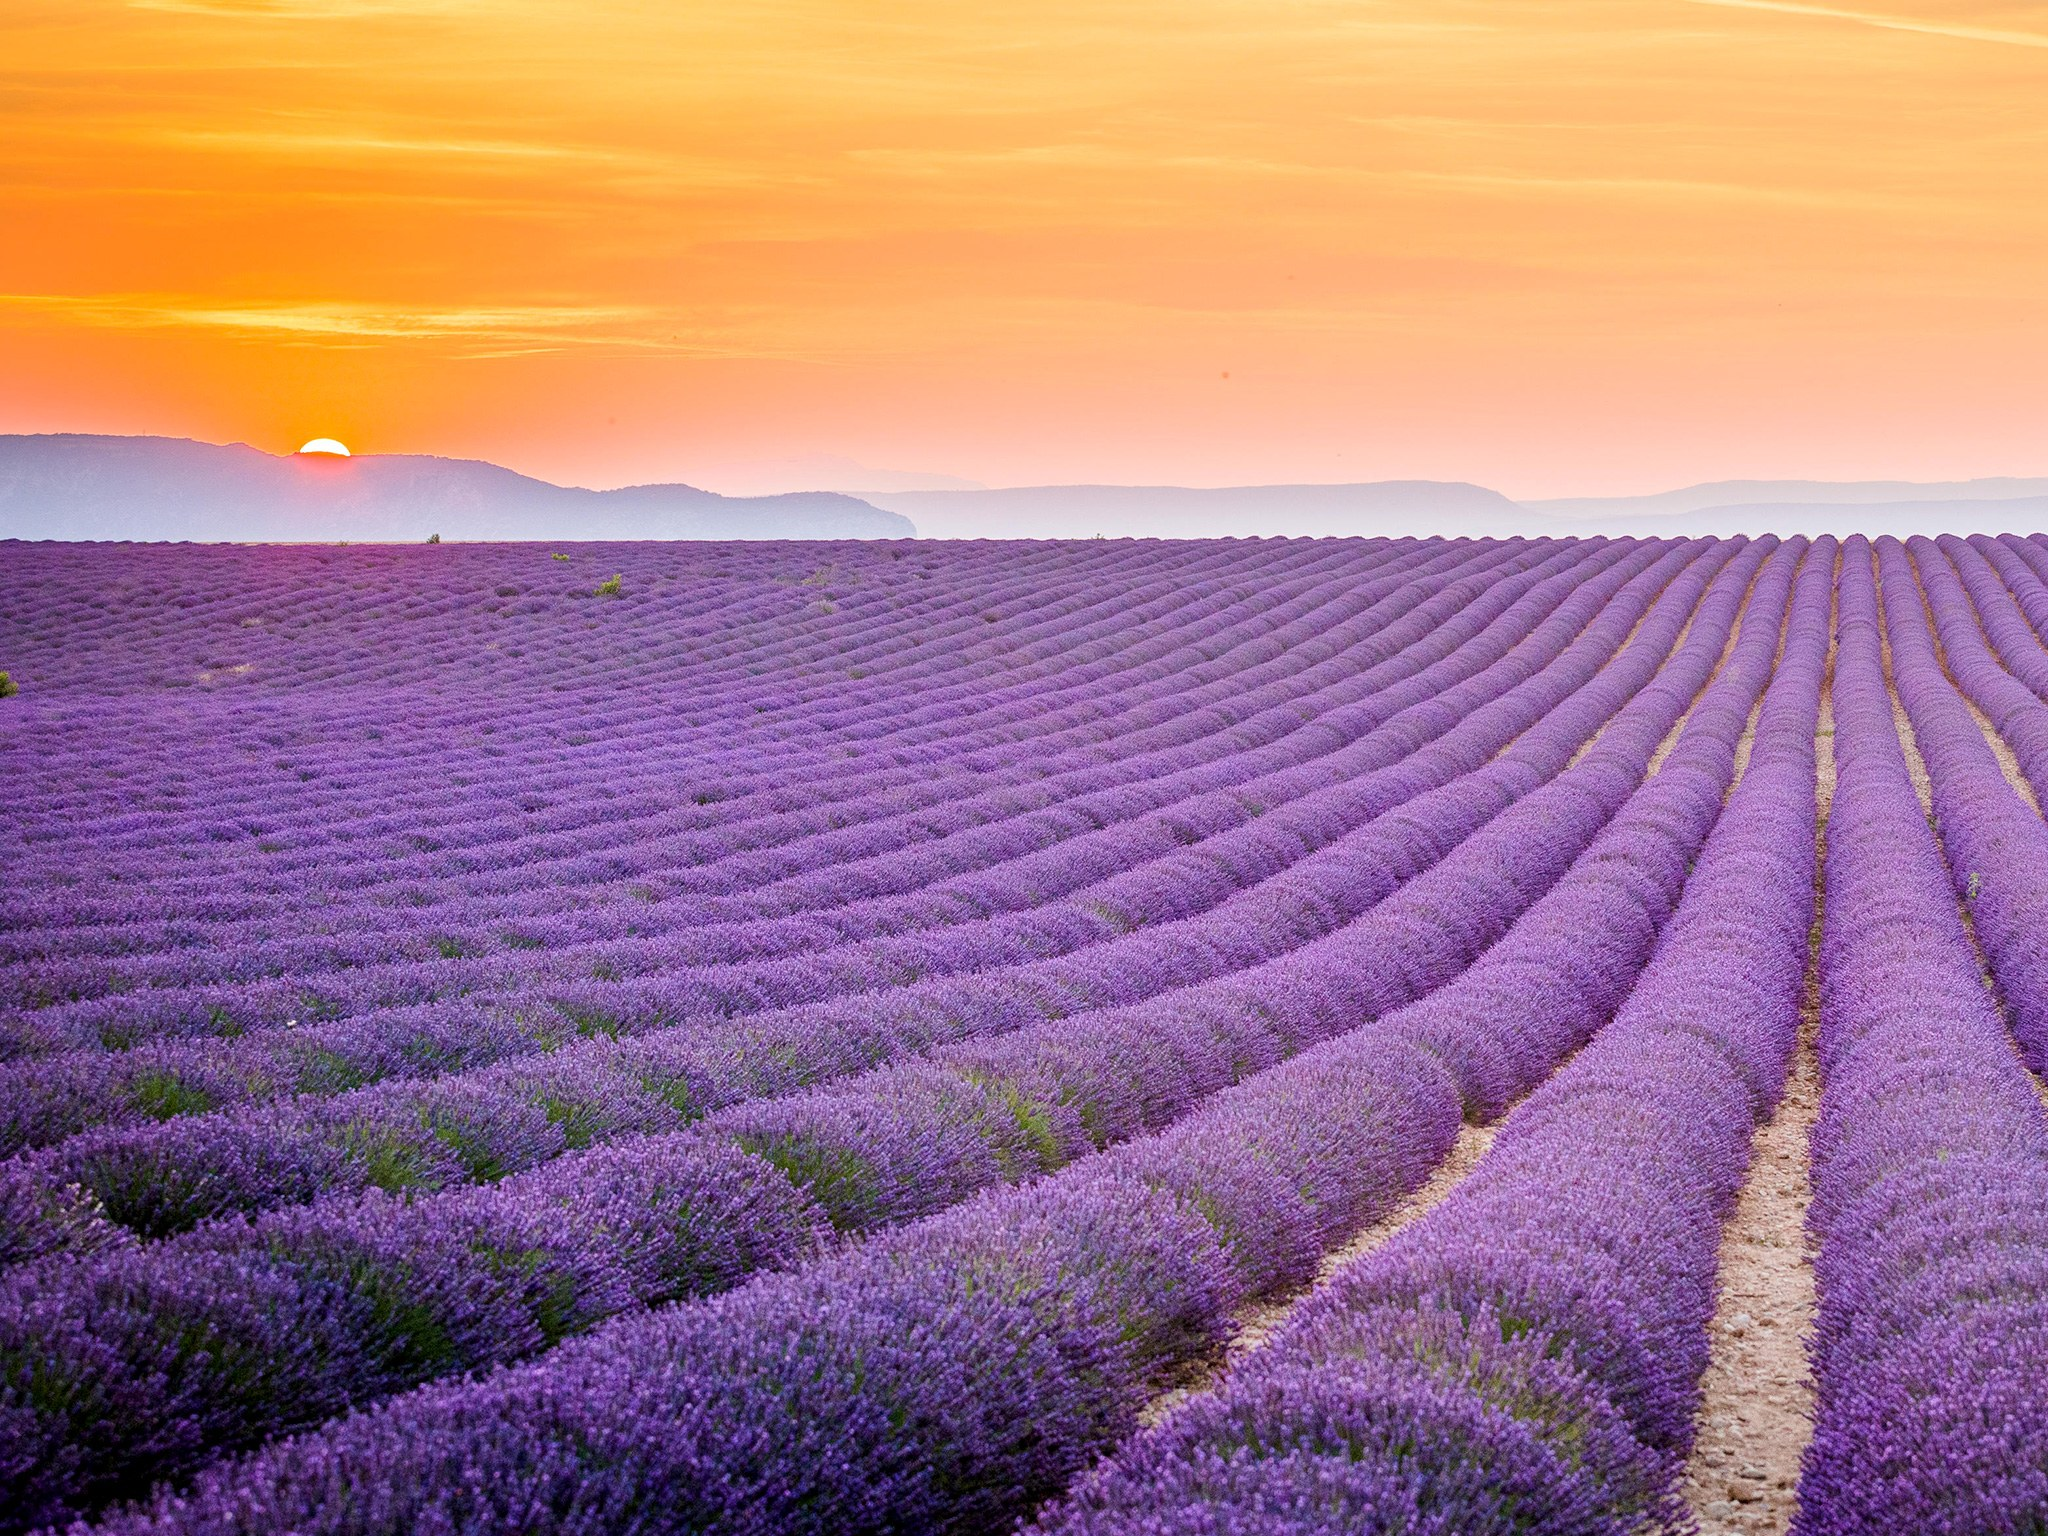 Lavender field Provence France HD Wallpaper Background Image 2048x1536